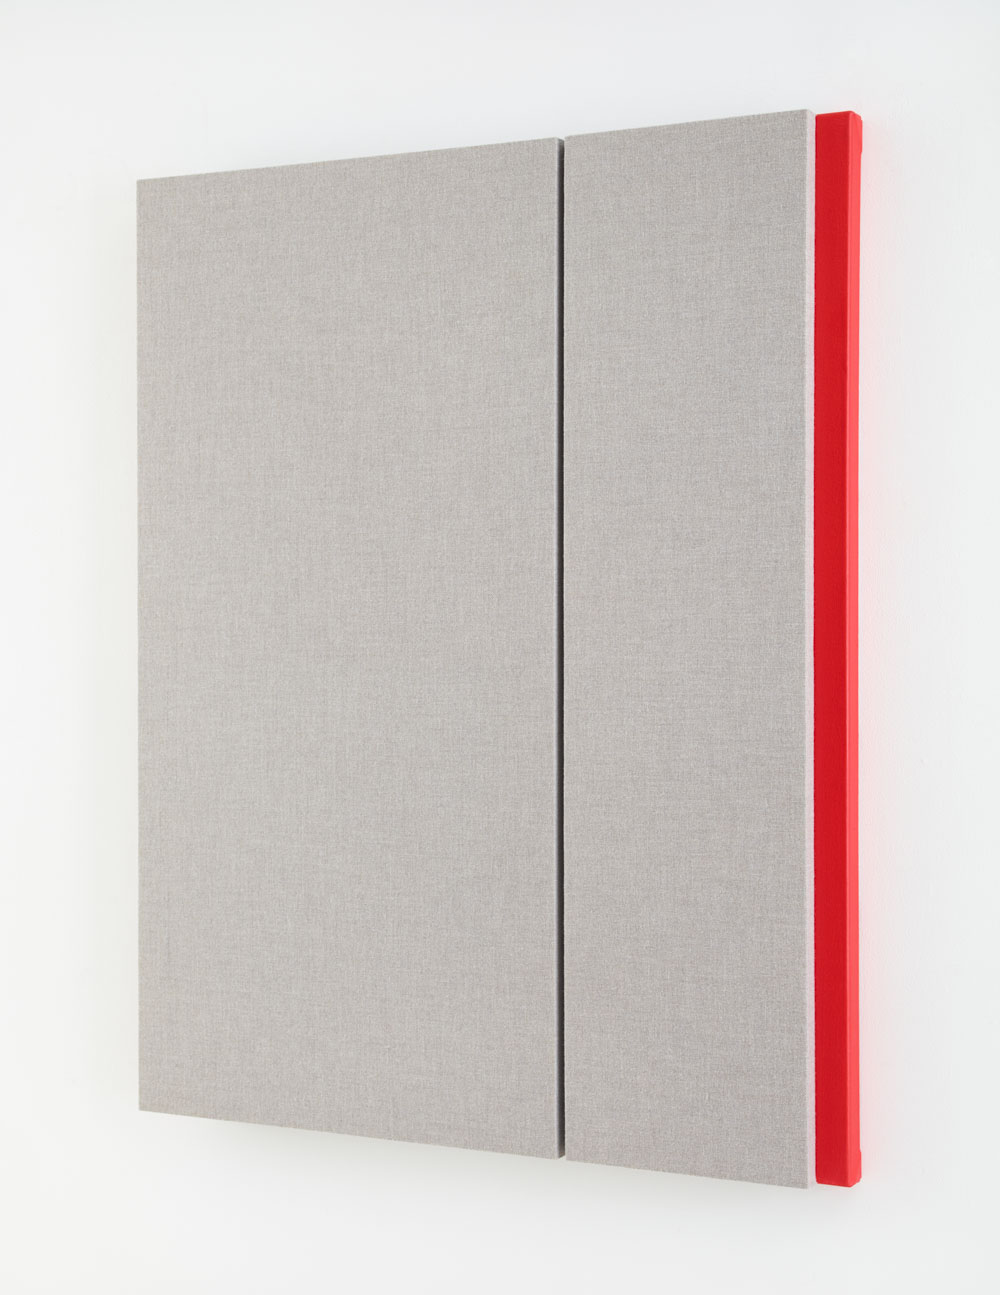 Quiet Gray with Red Reverberation #2, Acoustic absorber panel and acrylic paint on canvas 48 x 38 inches, 2014